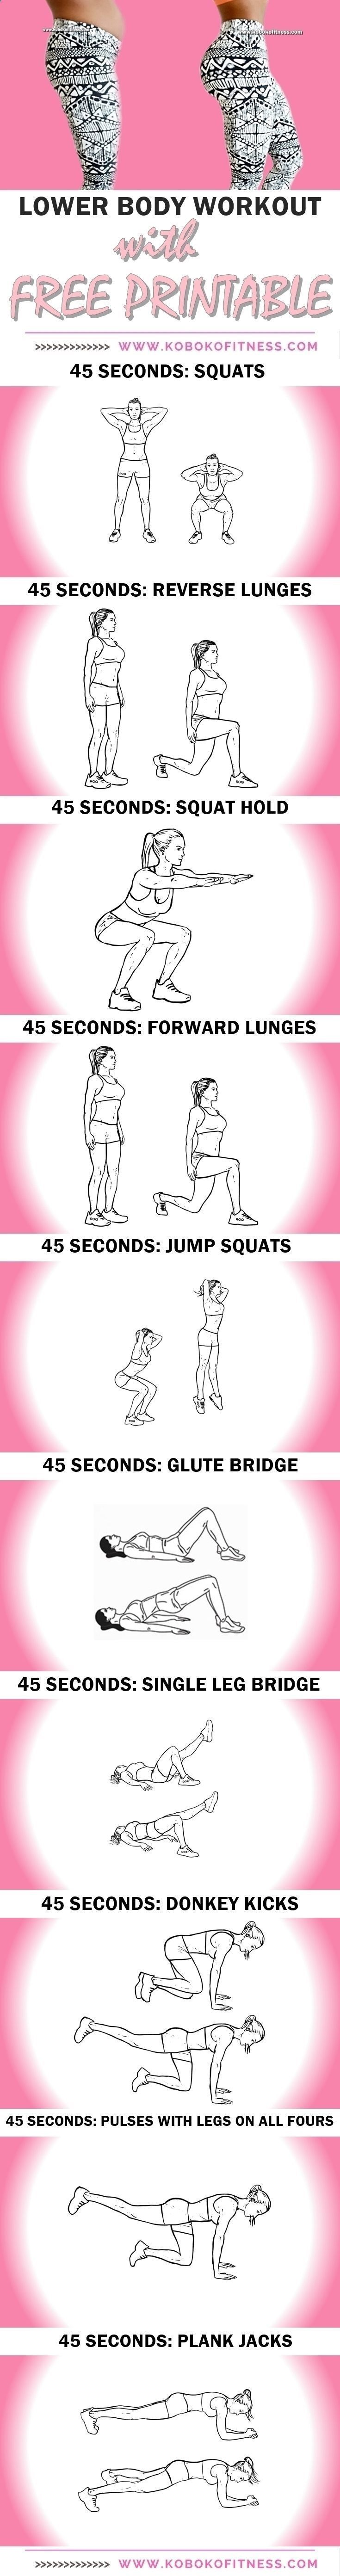 You get the best lowerbody workout. Thigh workout and butt workout all in one and youre done in 10 minutes. AWESOME butt and thigh workout with printable http://www.weightlosejumpstart.org/weight-loss-exercise-rules/